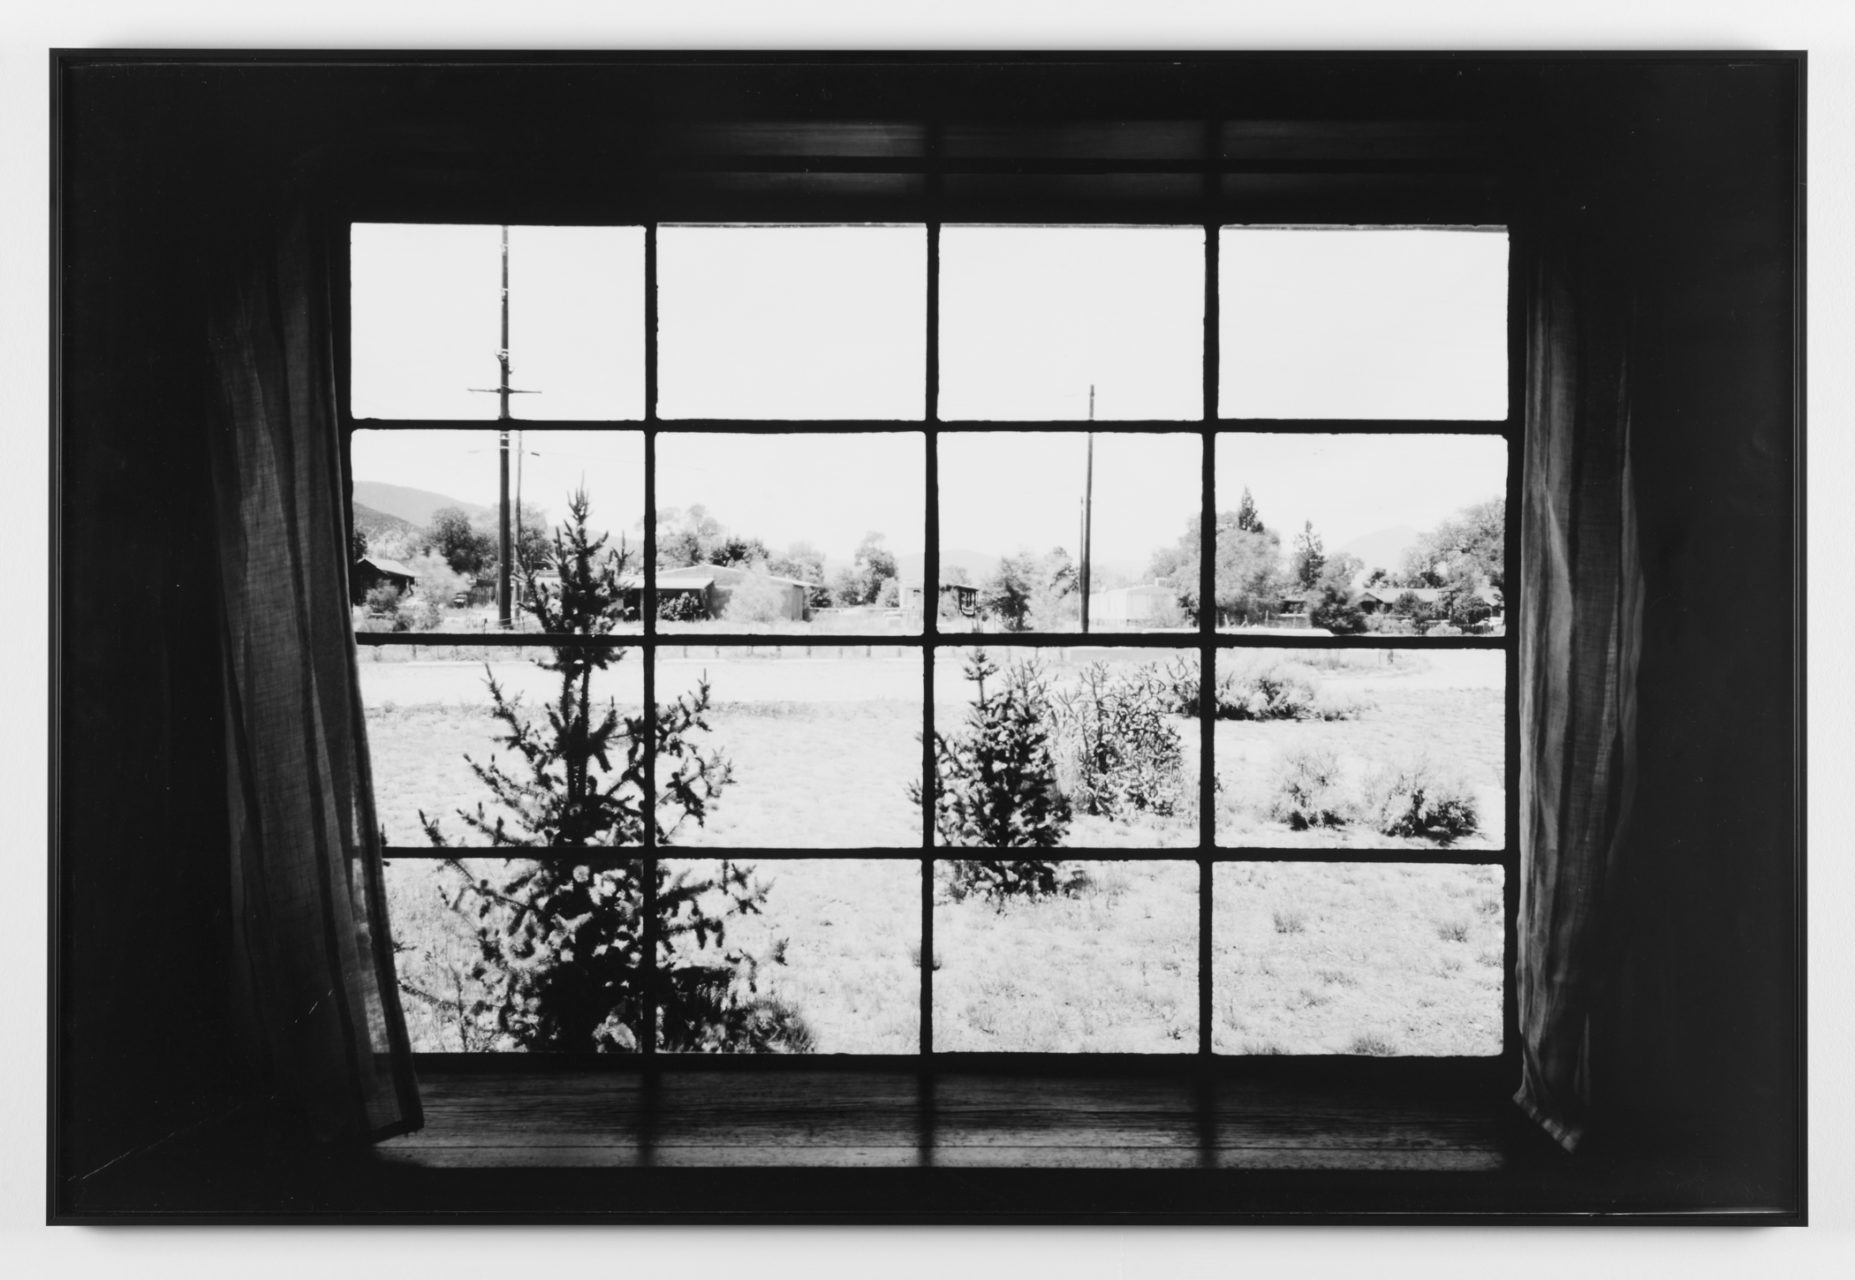 Andy_Mattern-Window_Gazes-Casa_Sutherland-NE